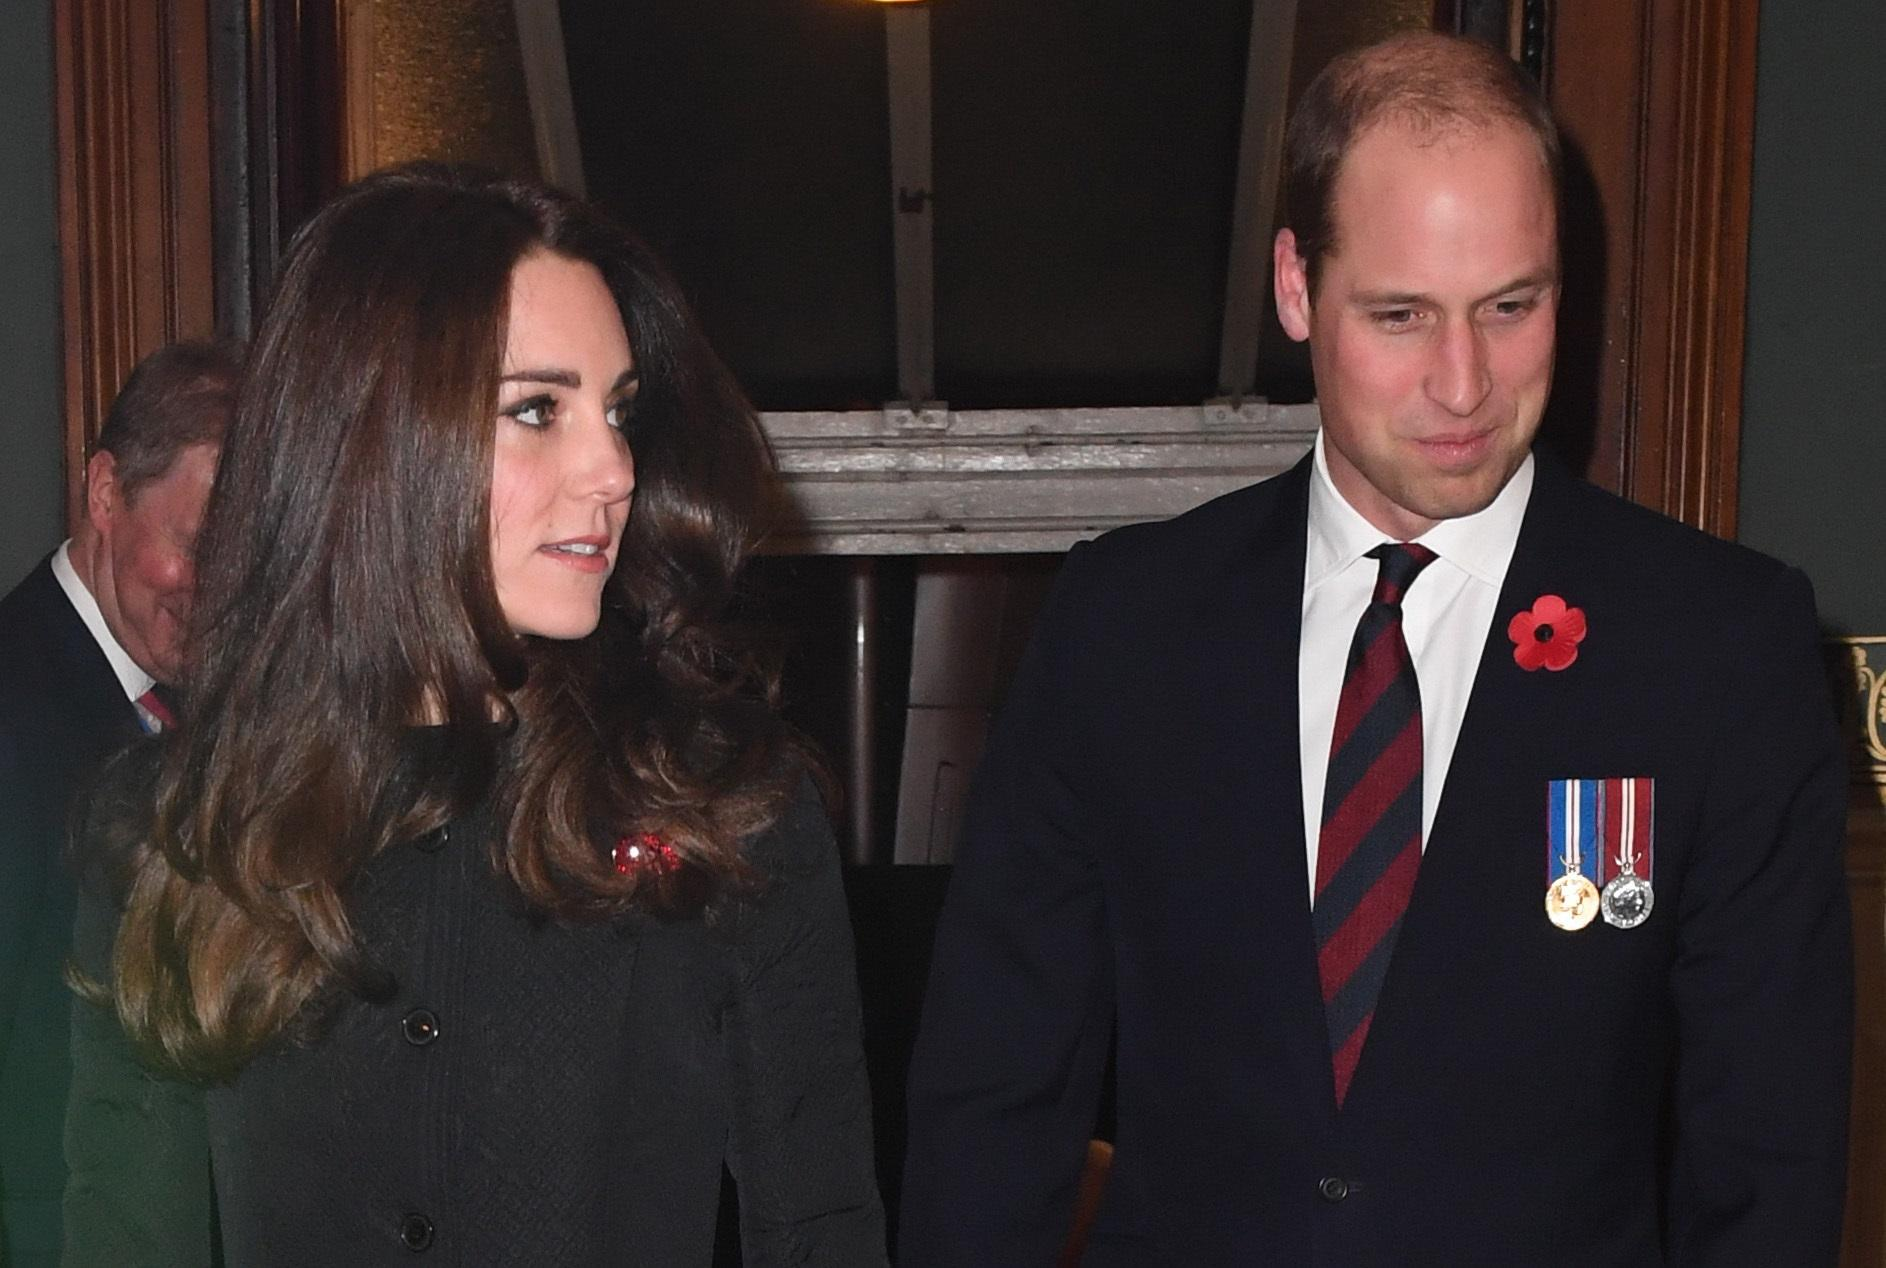 Kate Middleton Receives Christmas Presents for Prince George and Princess Charlotte